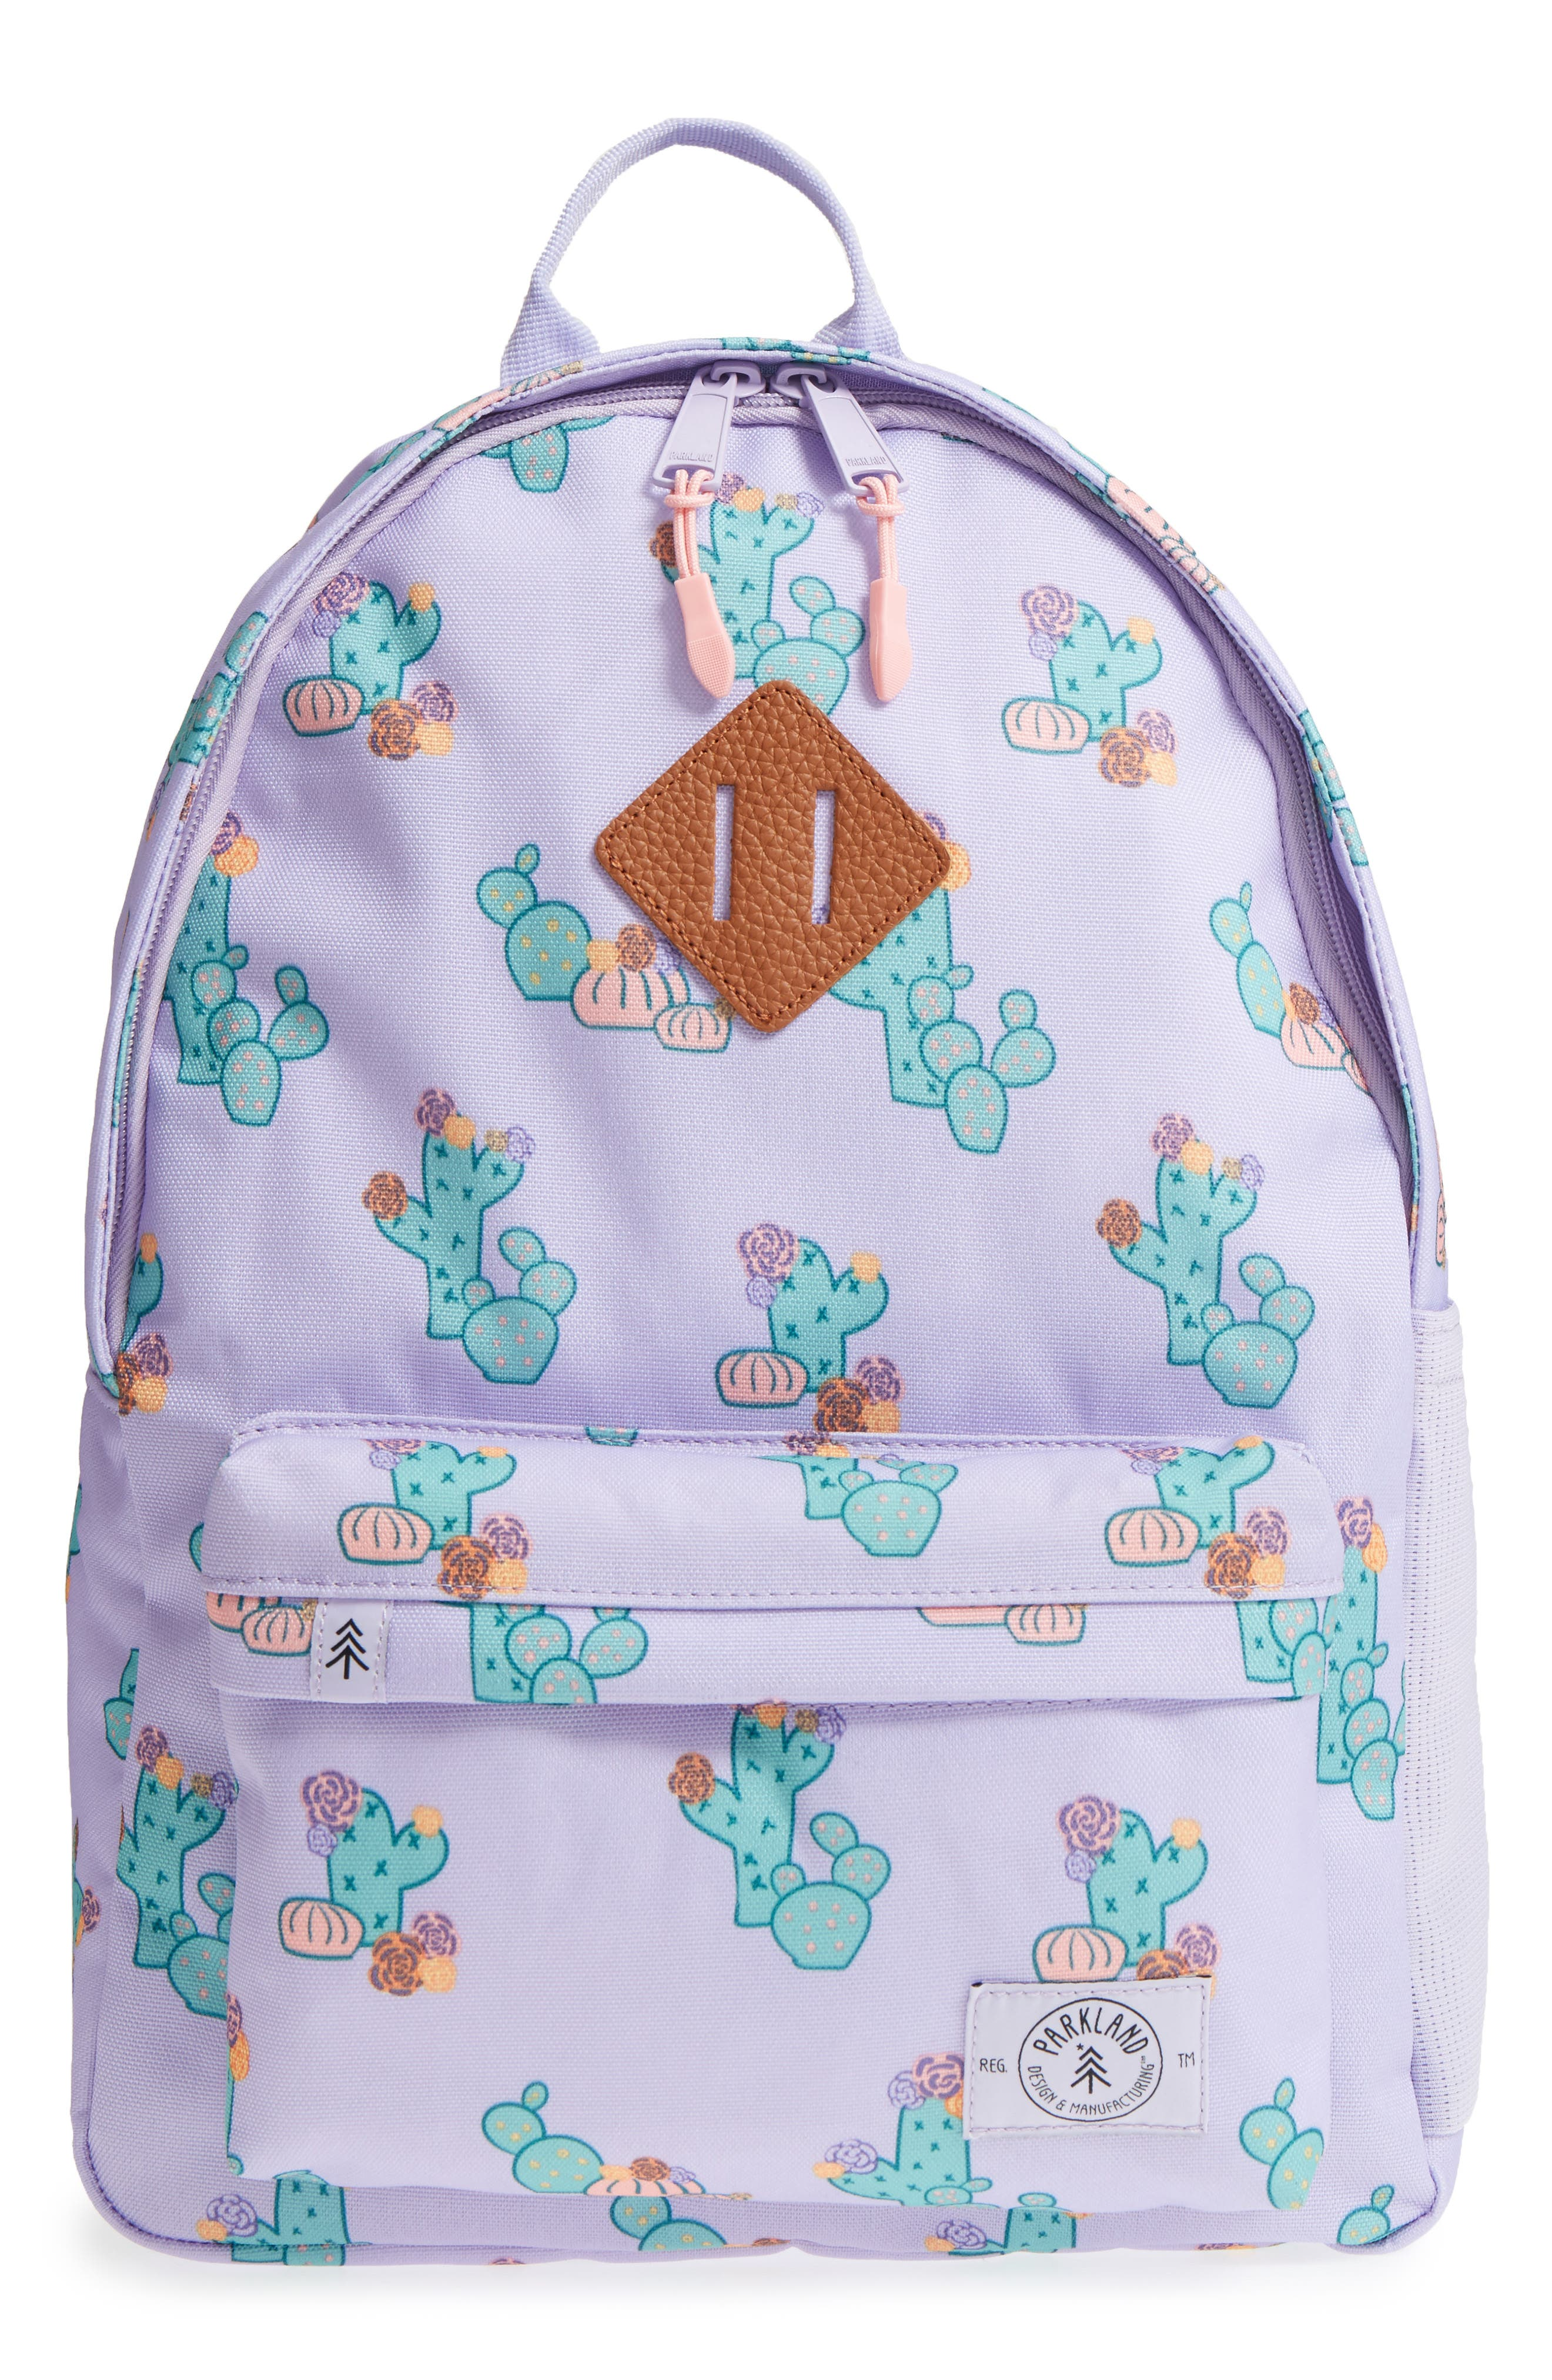 Bayside Cactus Flower Backpack,                         Main,                         color, 533